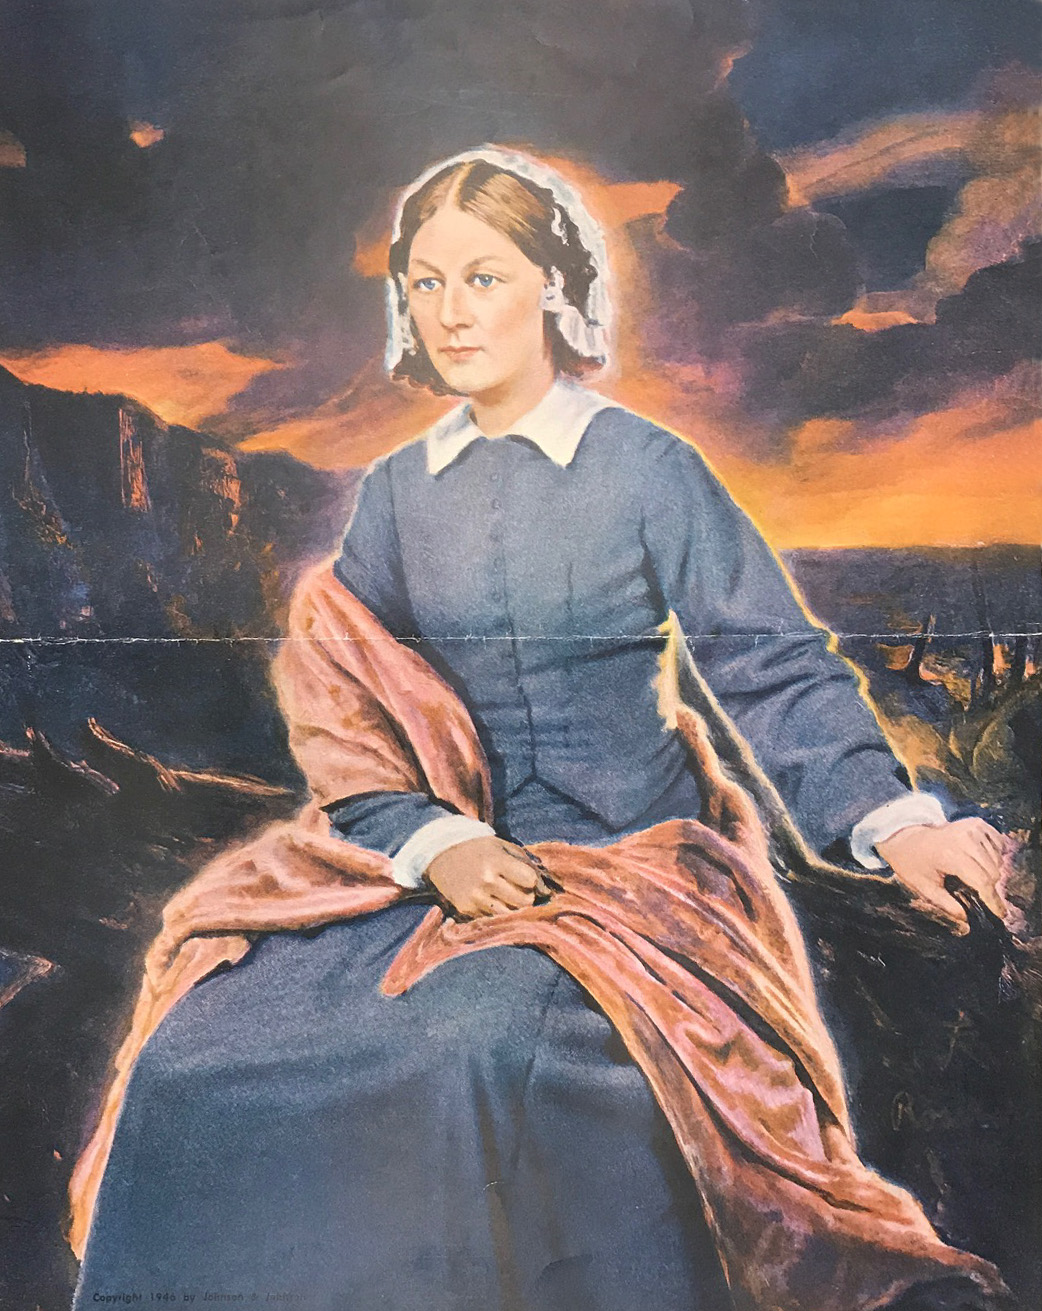 Painting of Florence Nightingale commissioned by Johnson & Johnson in 1946 to honor the profession of nursing.